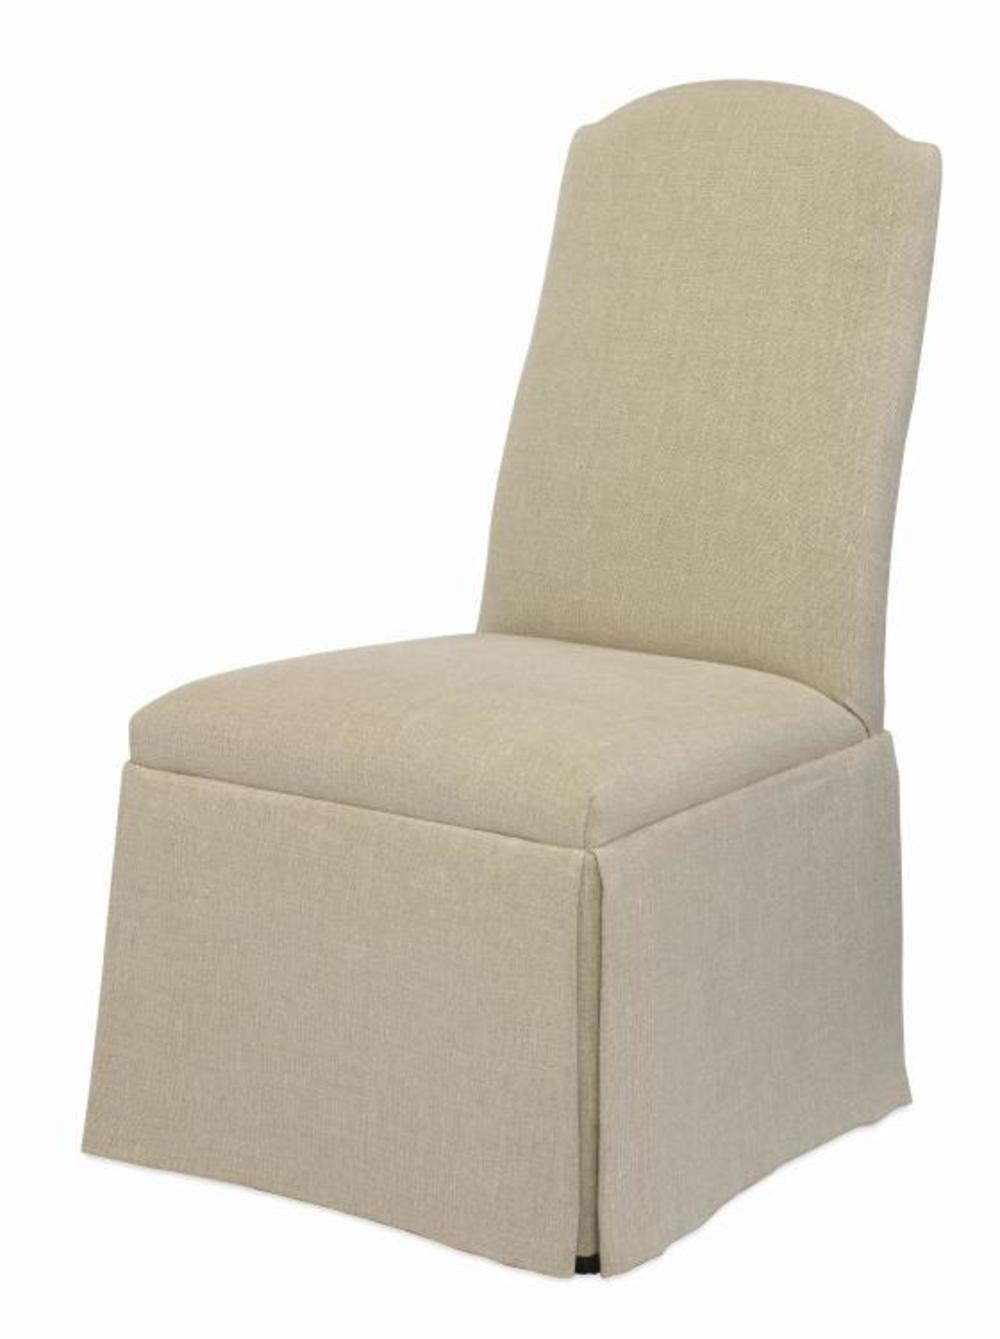 Century Furniture - Chandler Curved Back w/ Arch Top Chair